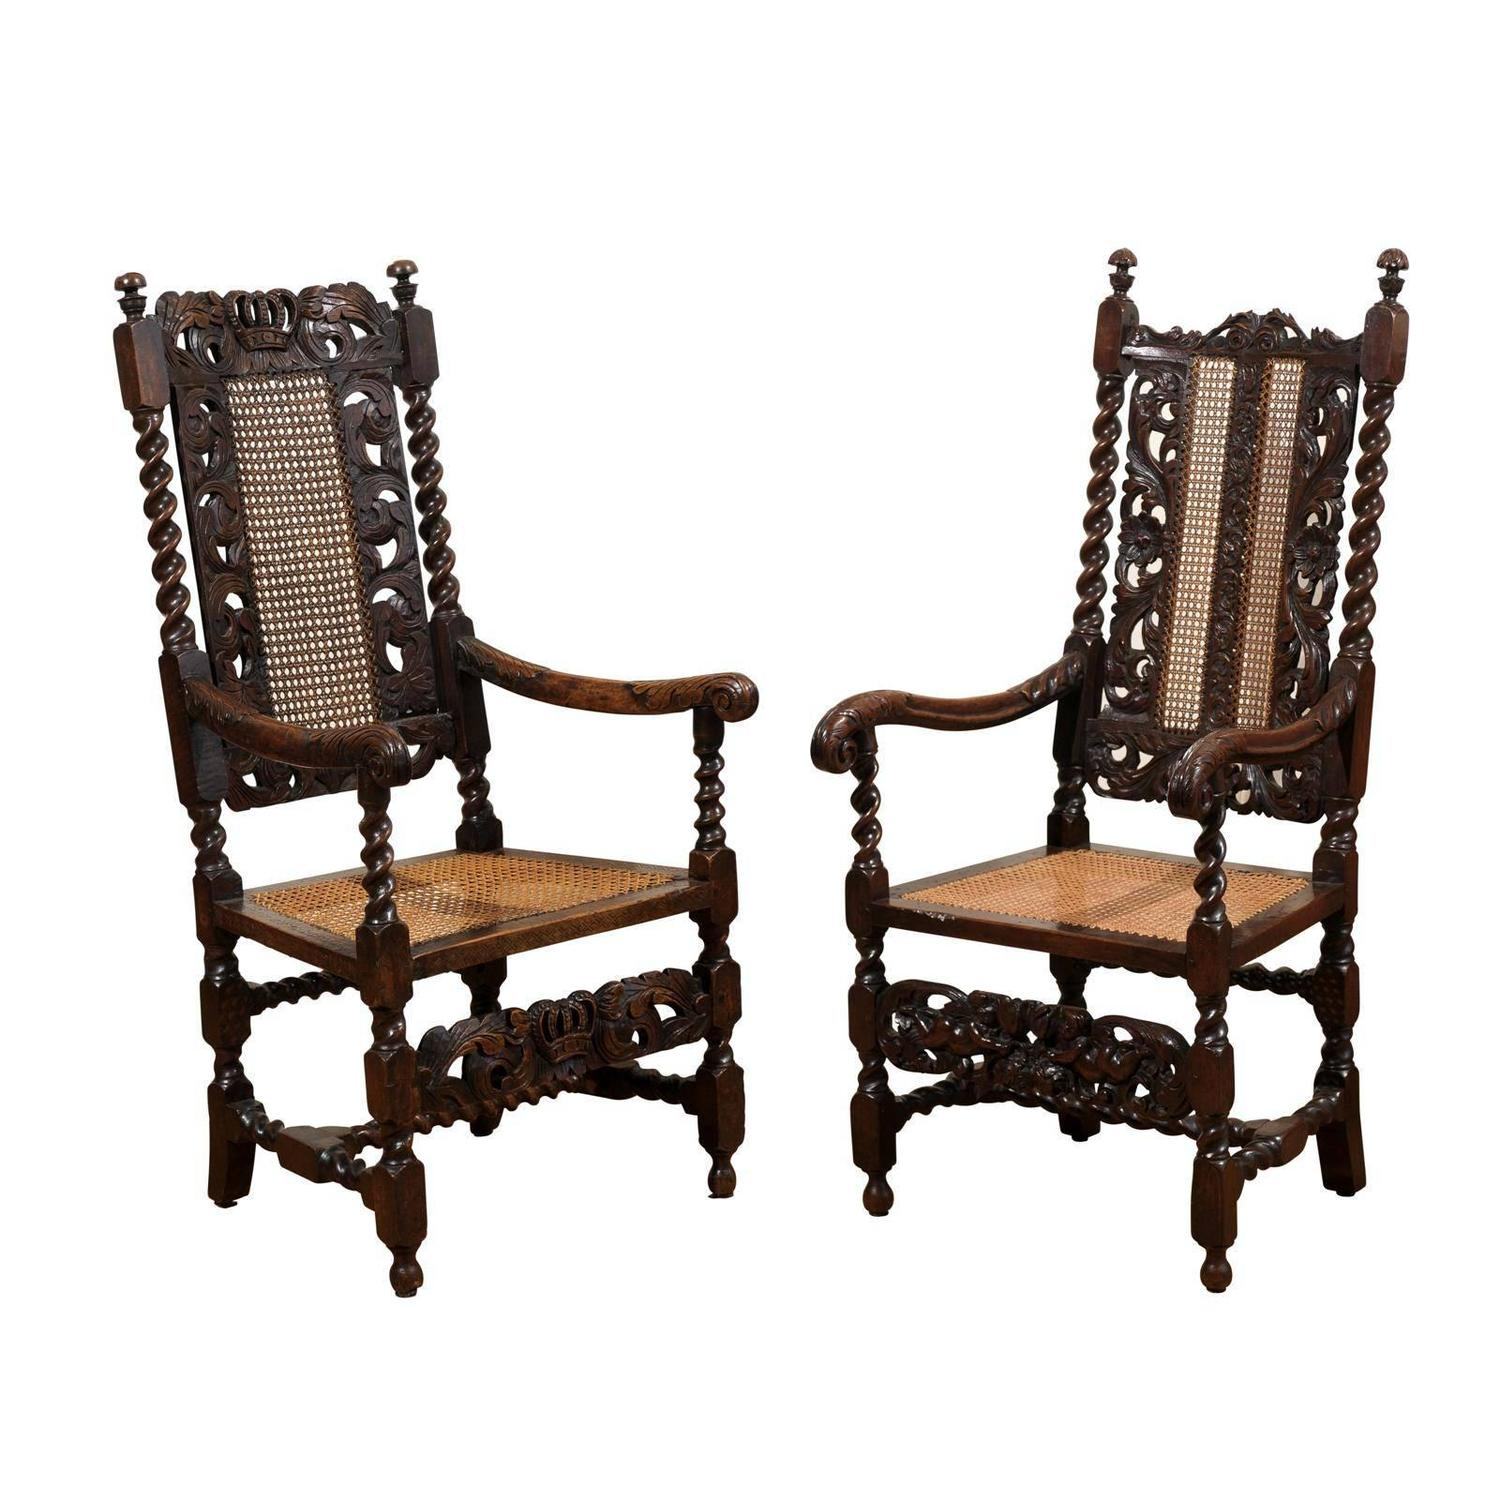 barley twist chair bamboo style dining chairs pair of english 17th century arm for